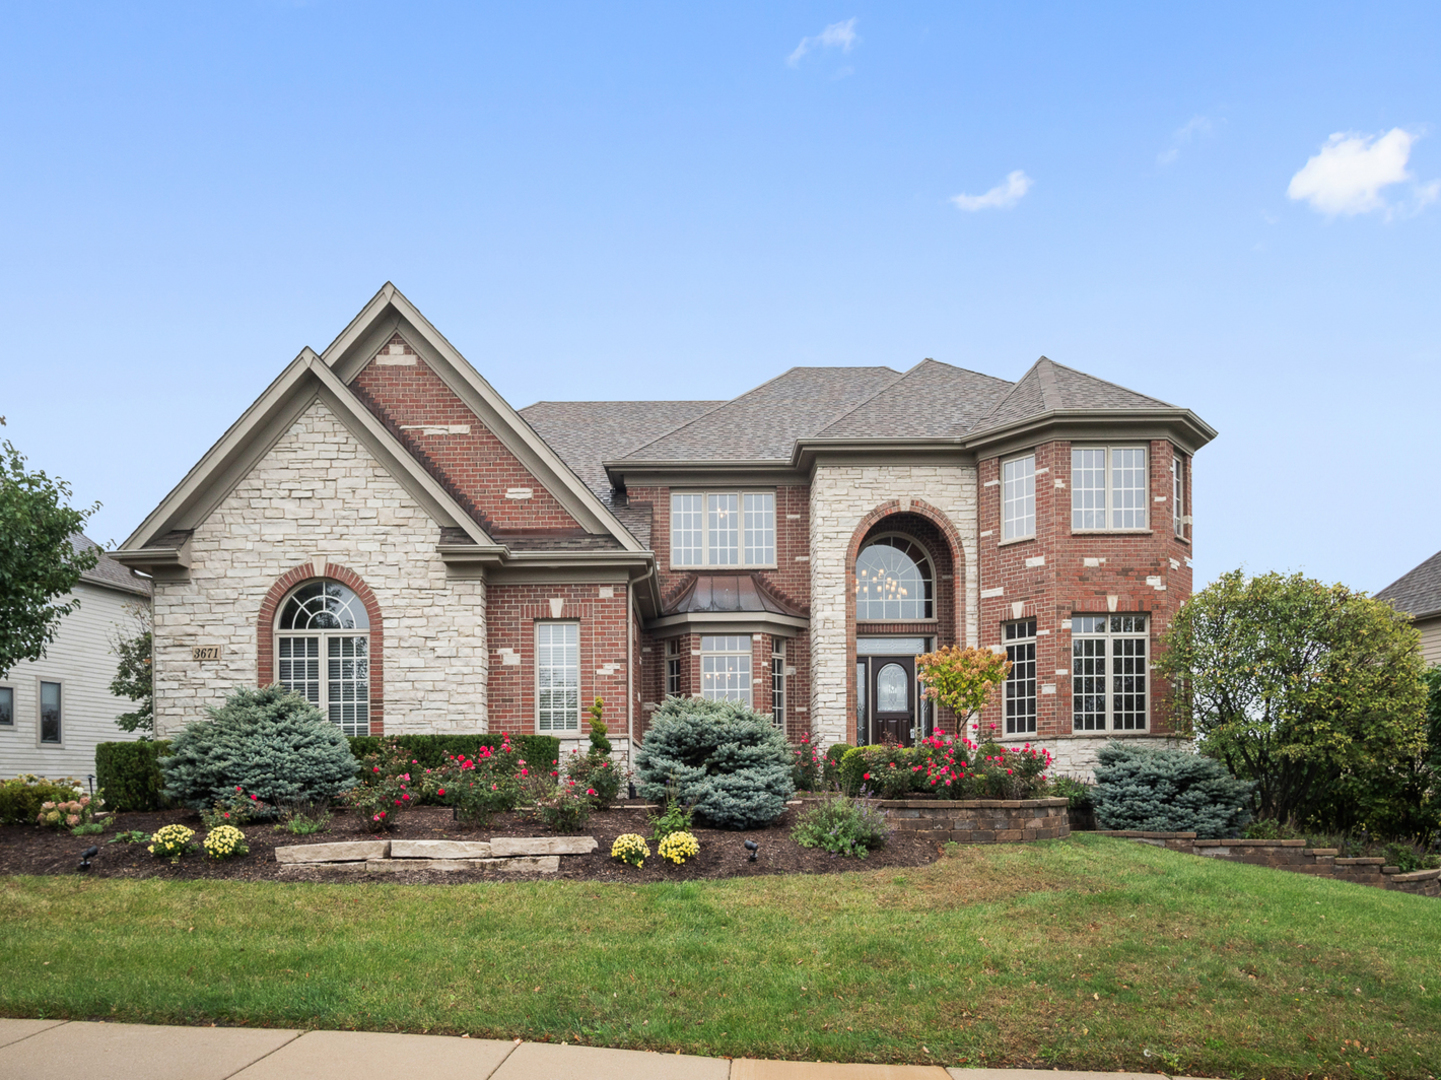 3671 Peregrine Way, Elgin in Kane County, IL 60124 Home for Sale